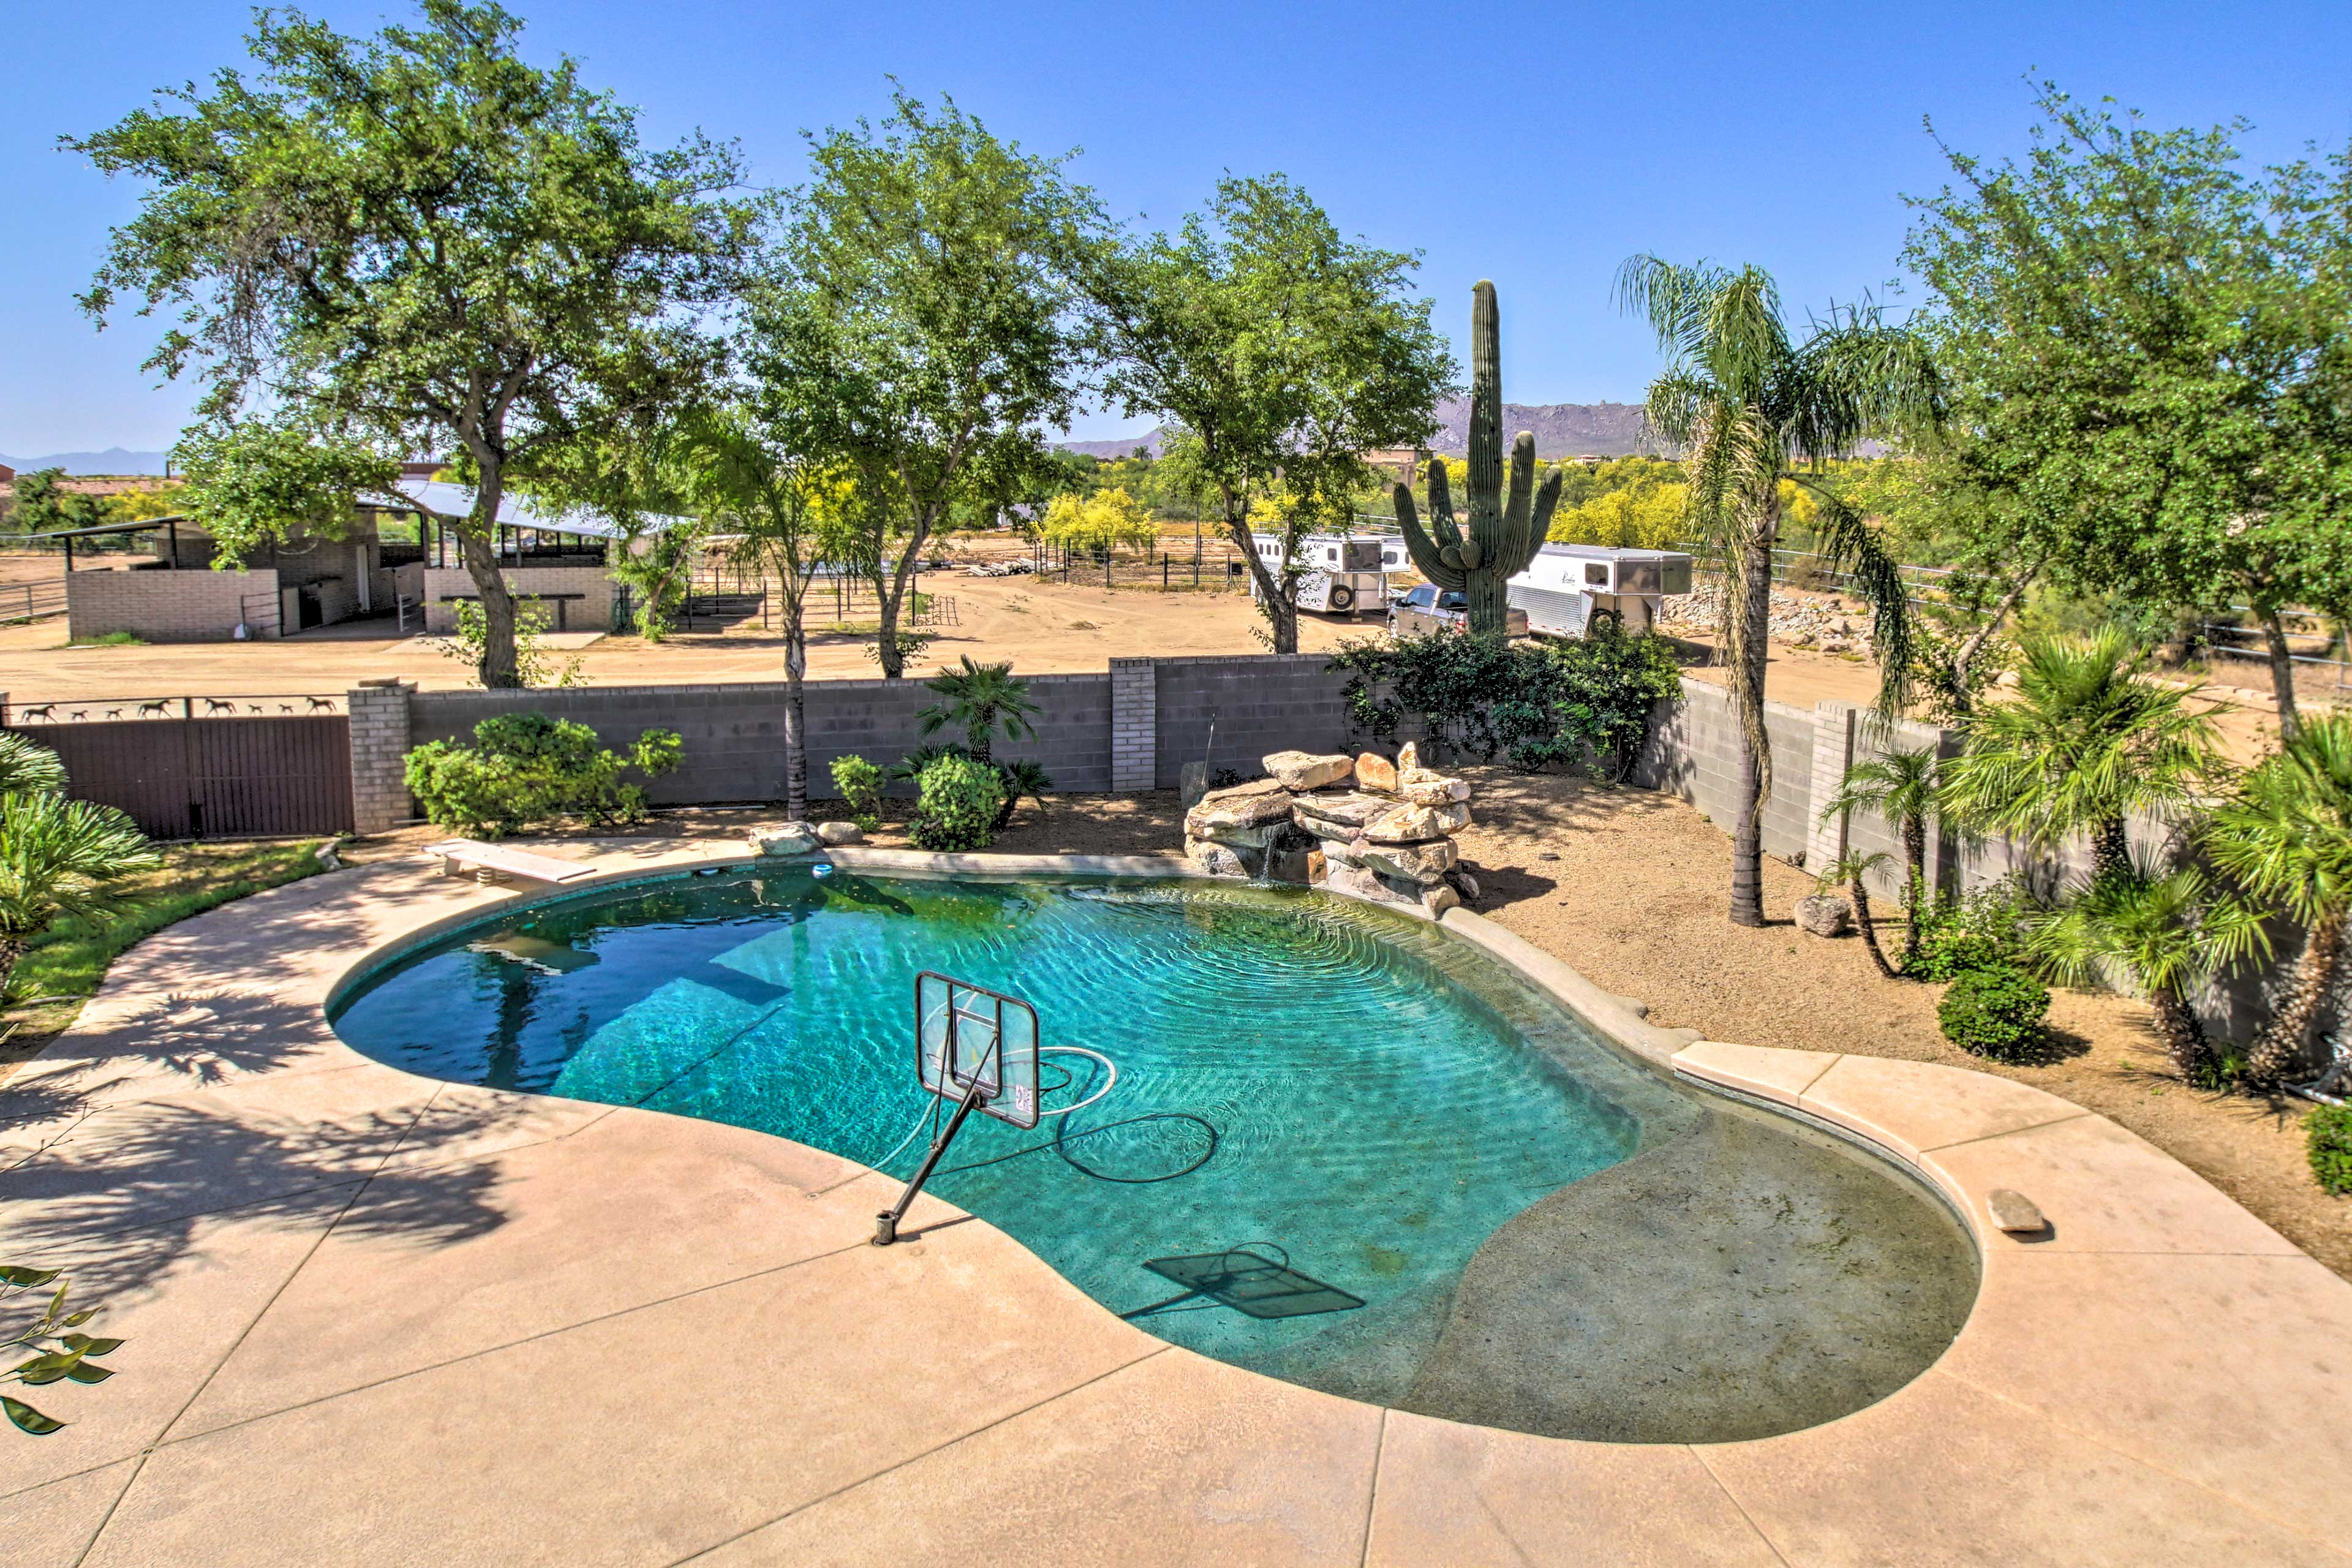 The pool is accented by the rock features and cacti.